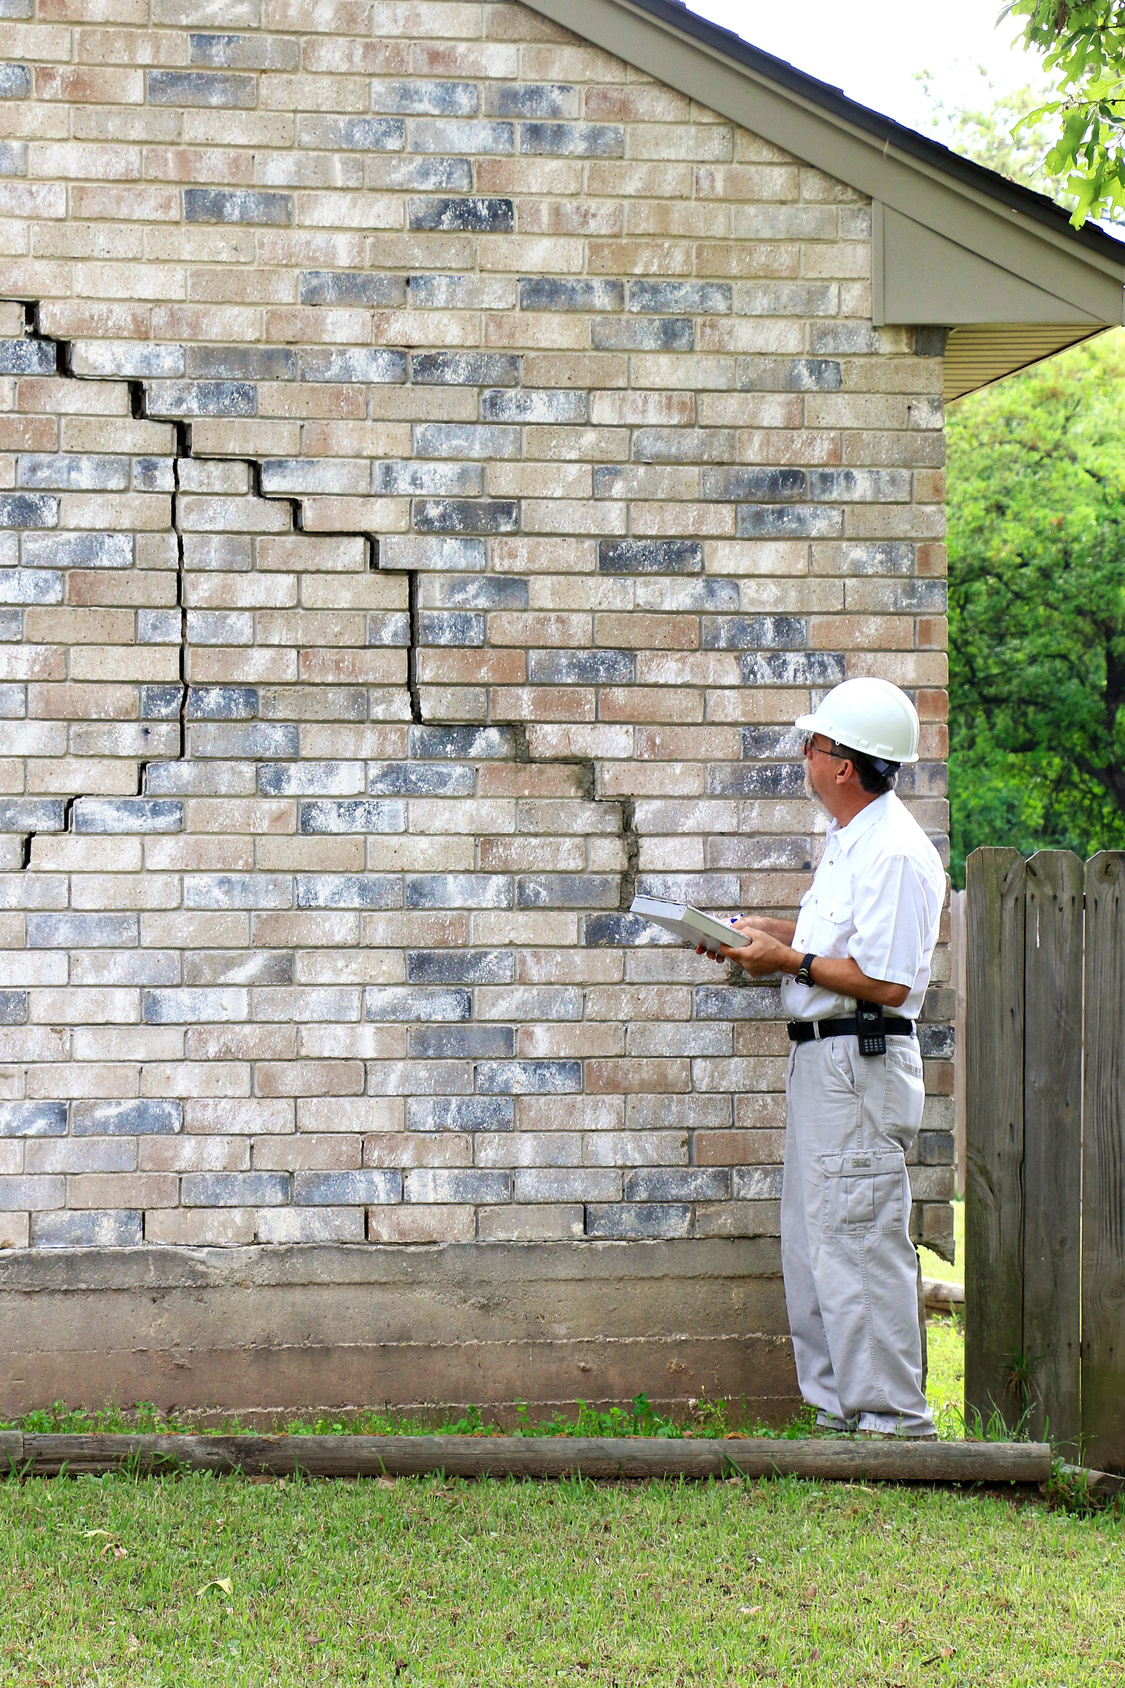 Foundation Damage? Here's What to Look For